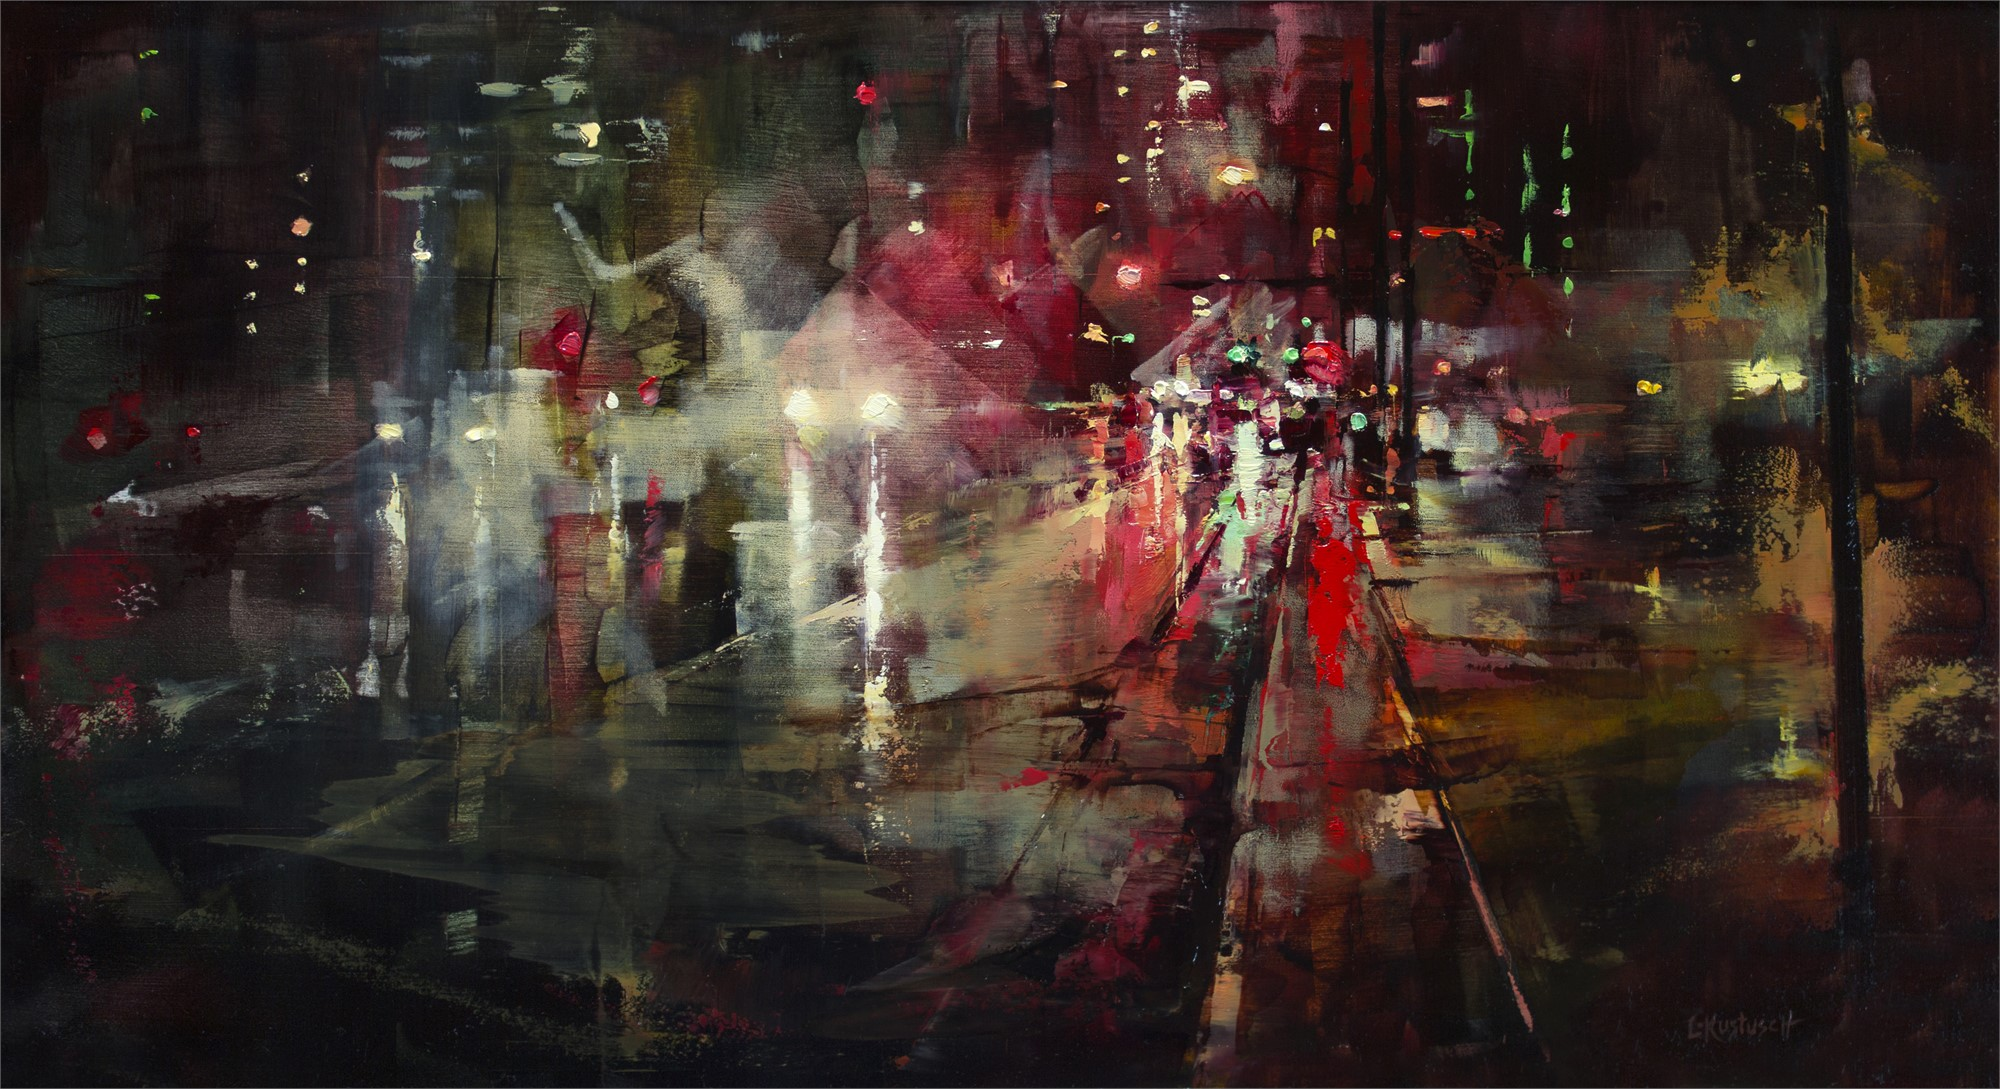 Night Lights by Lindsey Kustusch